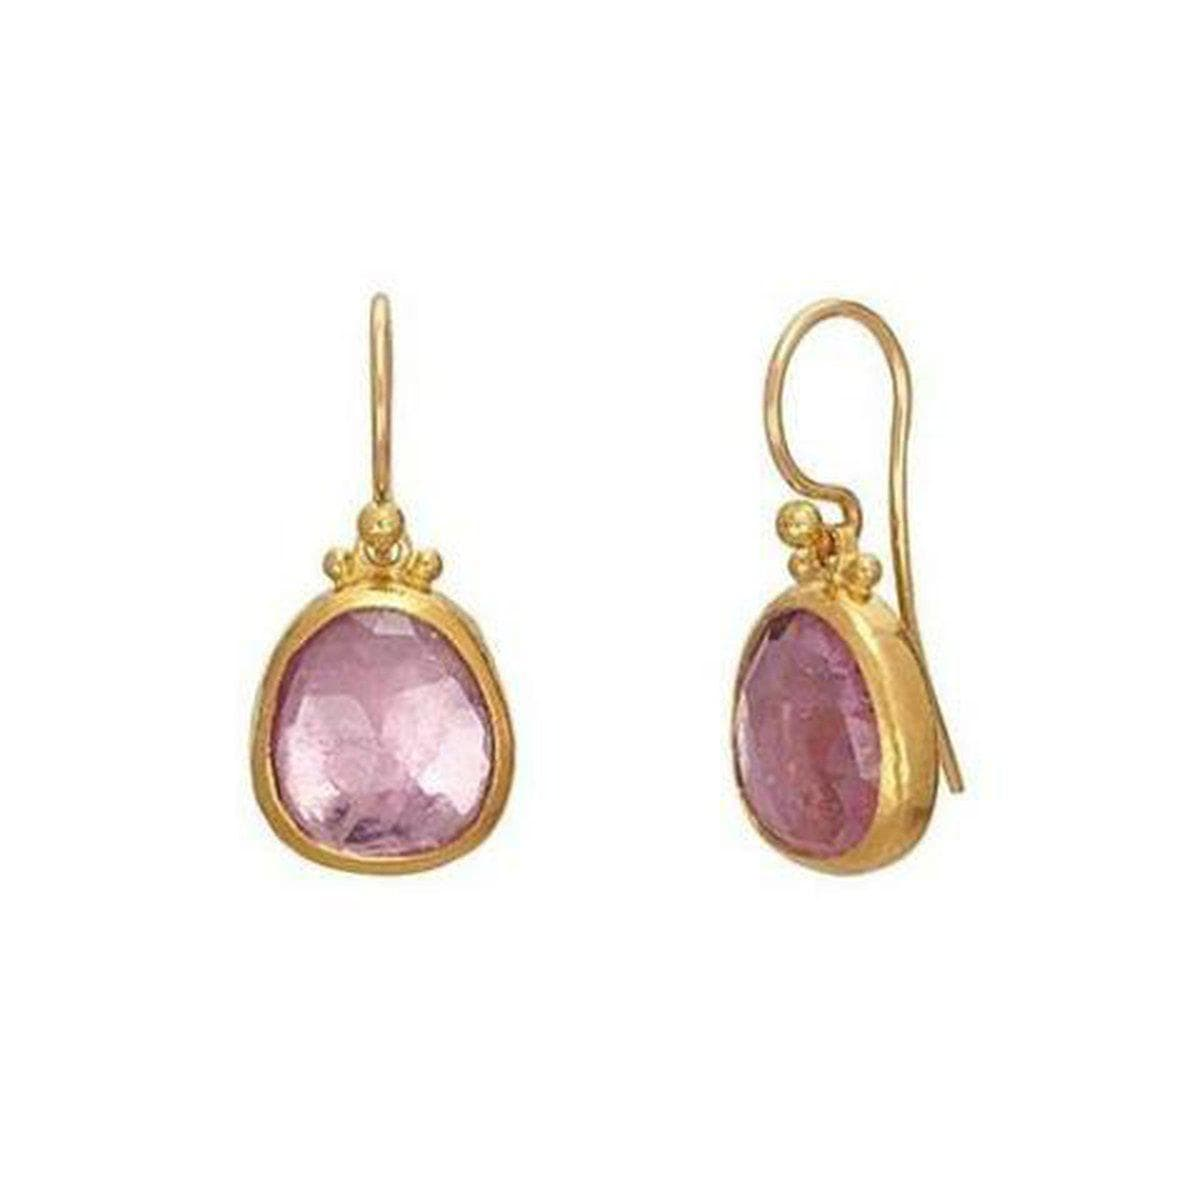 Elements 24K Gold Pink Tourmaline Earrings - E-U24496-PT-GURHAN-Renee Taylor Gallery